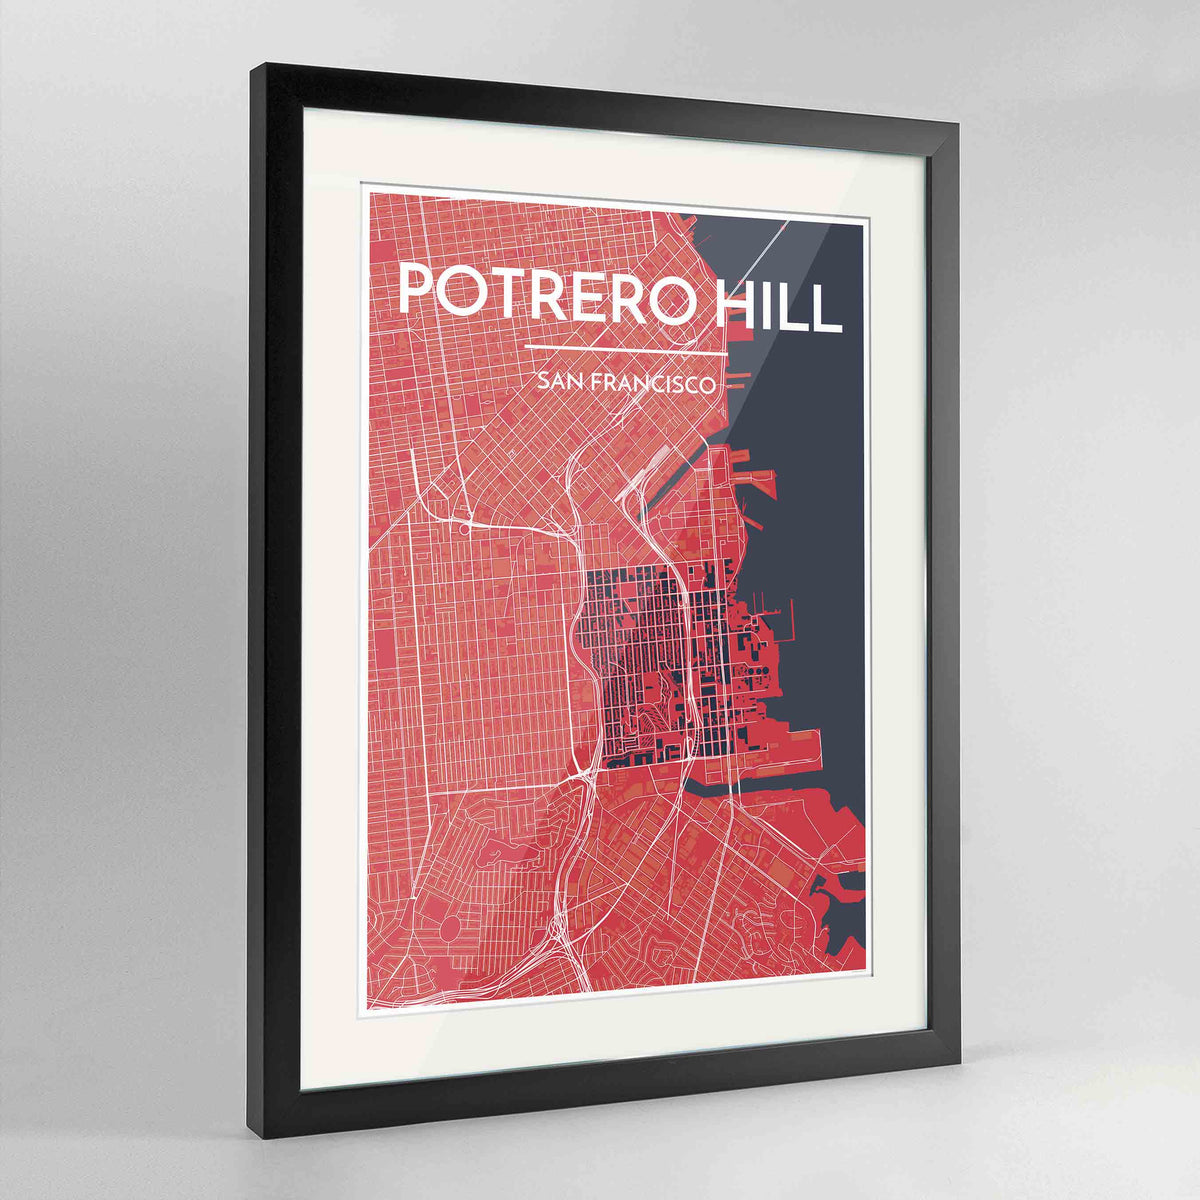 "Framed Potrero Hill San Francisco Map Art Print 24x36"" Contemporary Black frame Point Two Design Group"